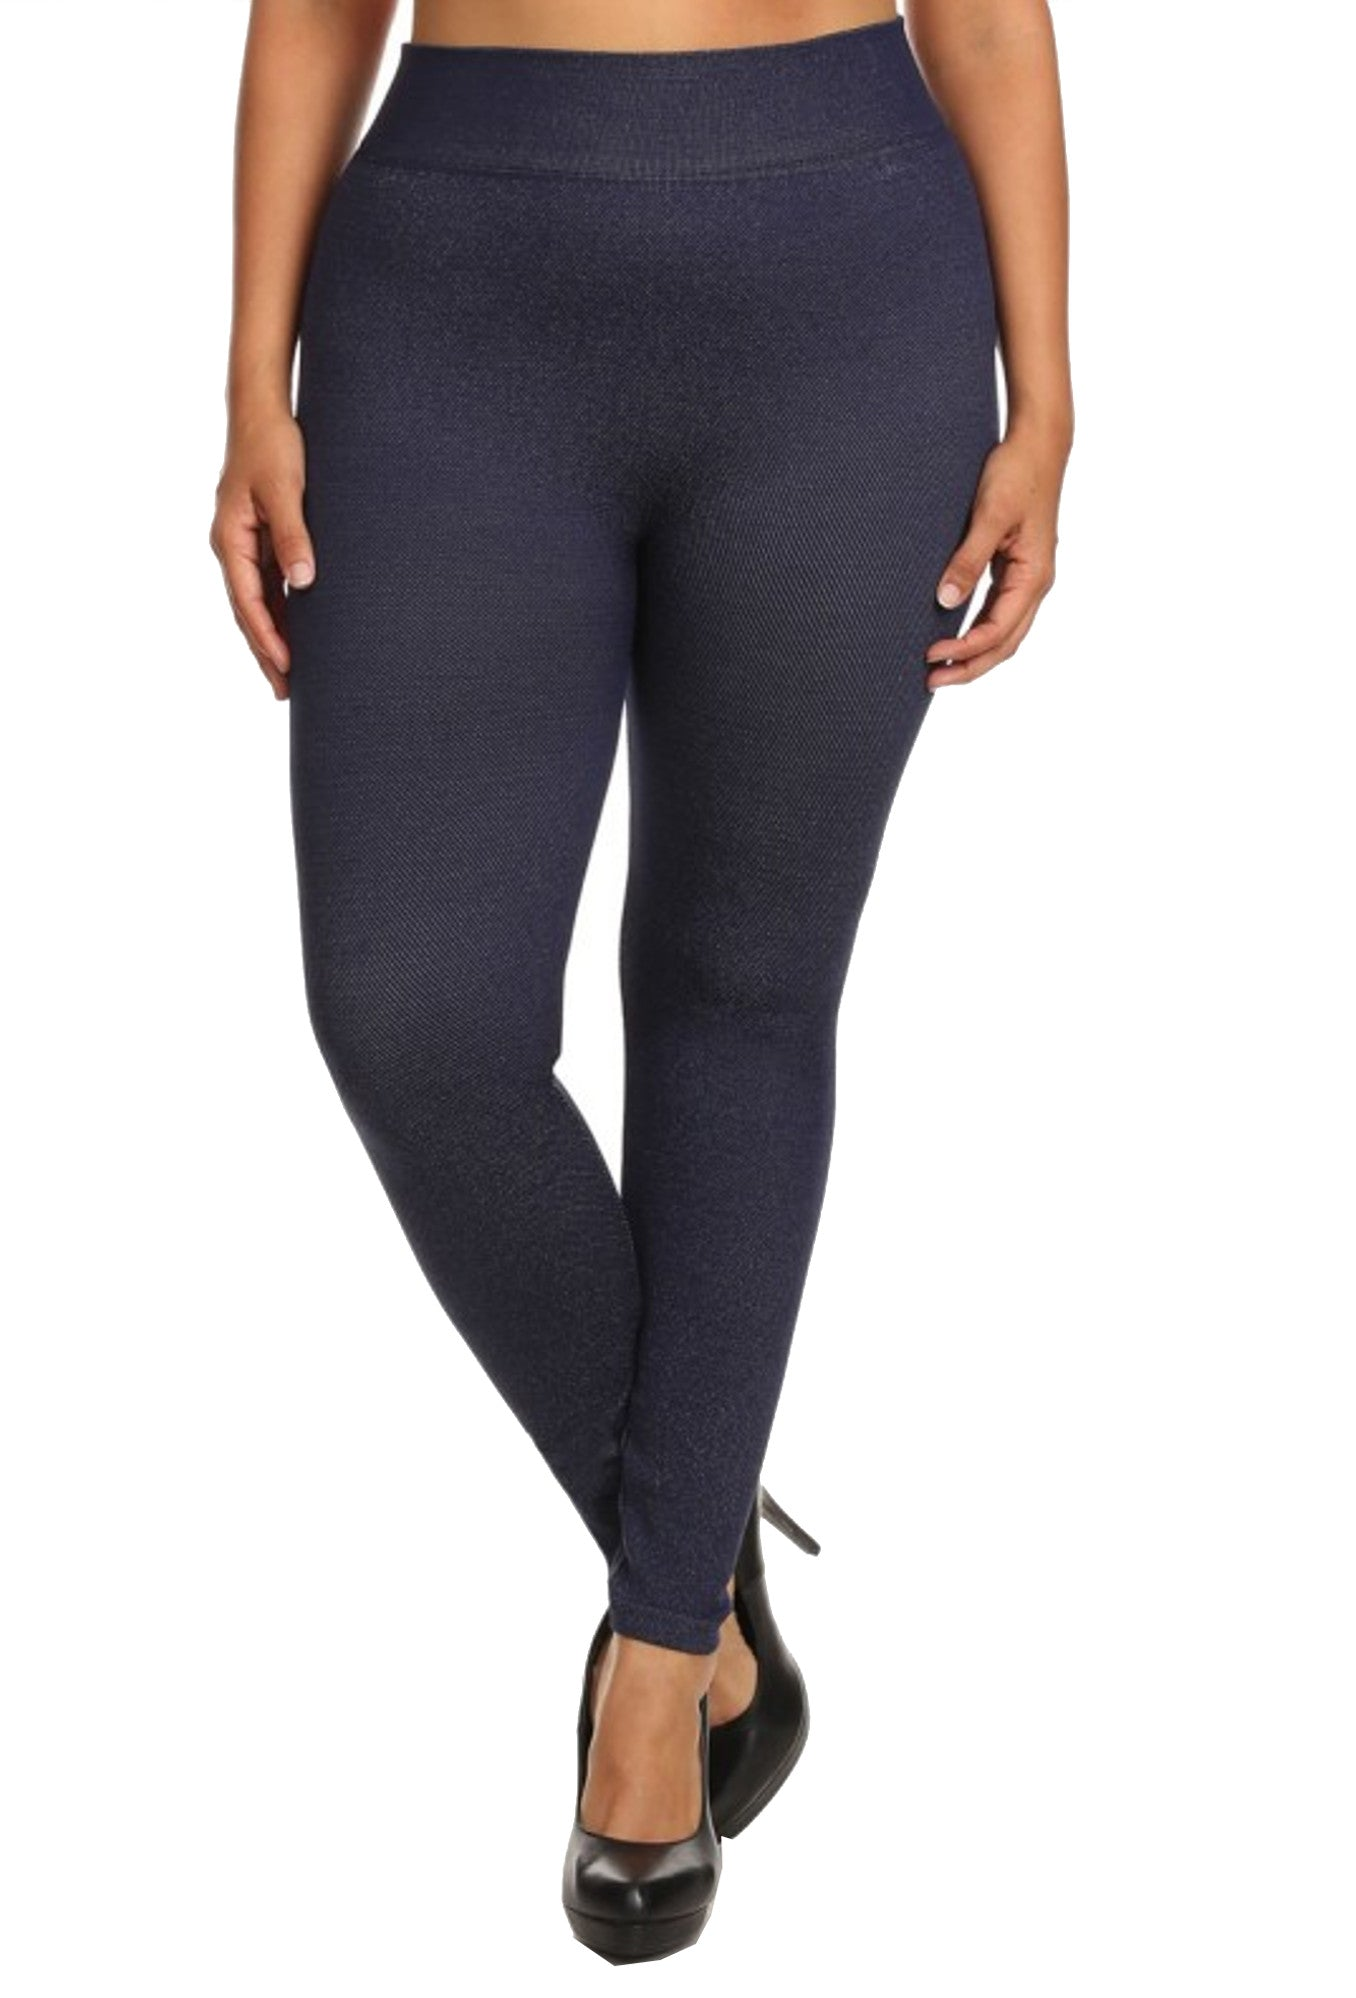 plus size jeggings, plus size jeggings, plus size denim leggings, plus leggings, queen leggings